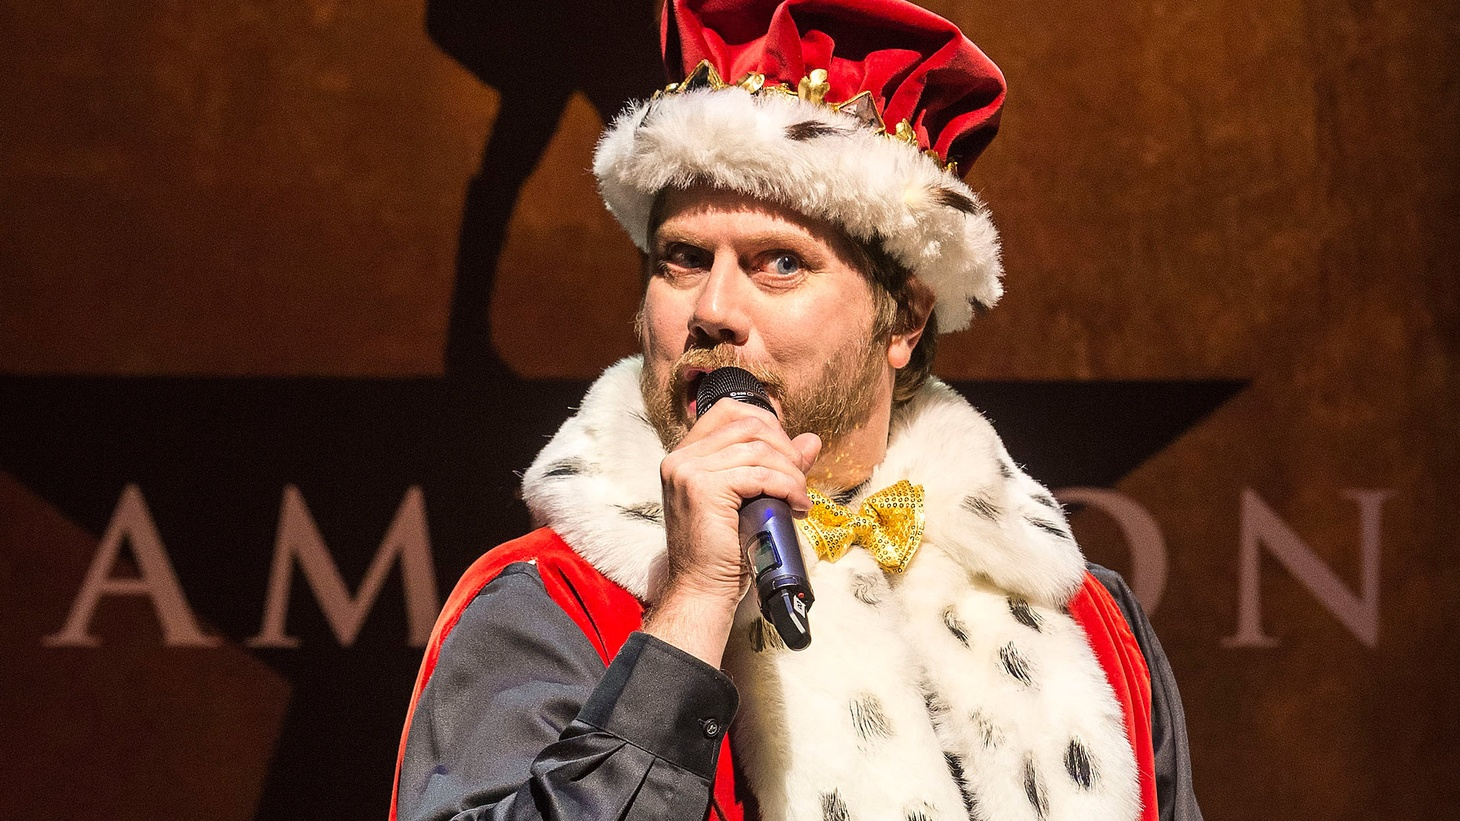 Okay, it's unavoidable. The holidays are upon us. Amidst the turkeys, black Fridays and Holiday parties, how about a little theater? Anthony Byrnes offers a quick list of the holiday spectacles on our stages.